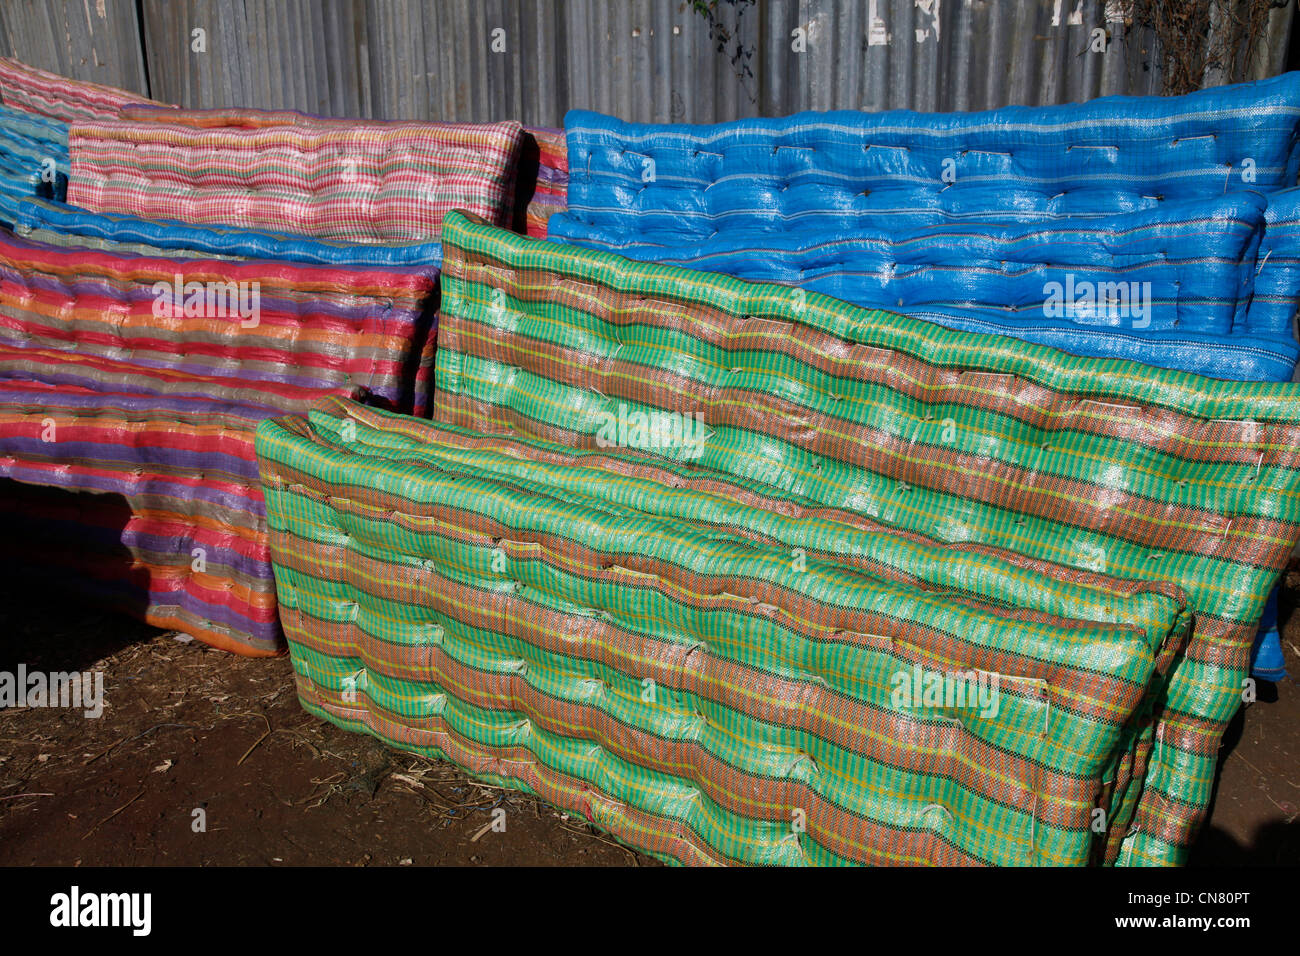 Mattresses for sale at the market in Bahir Dar, Ethiopia - Stock Image